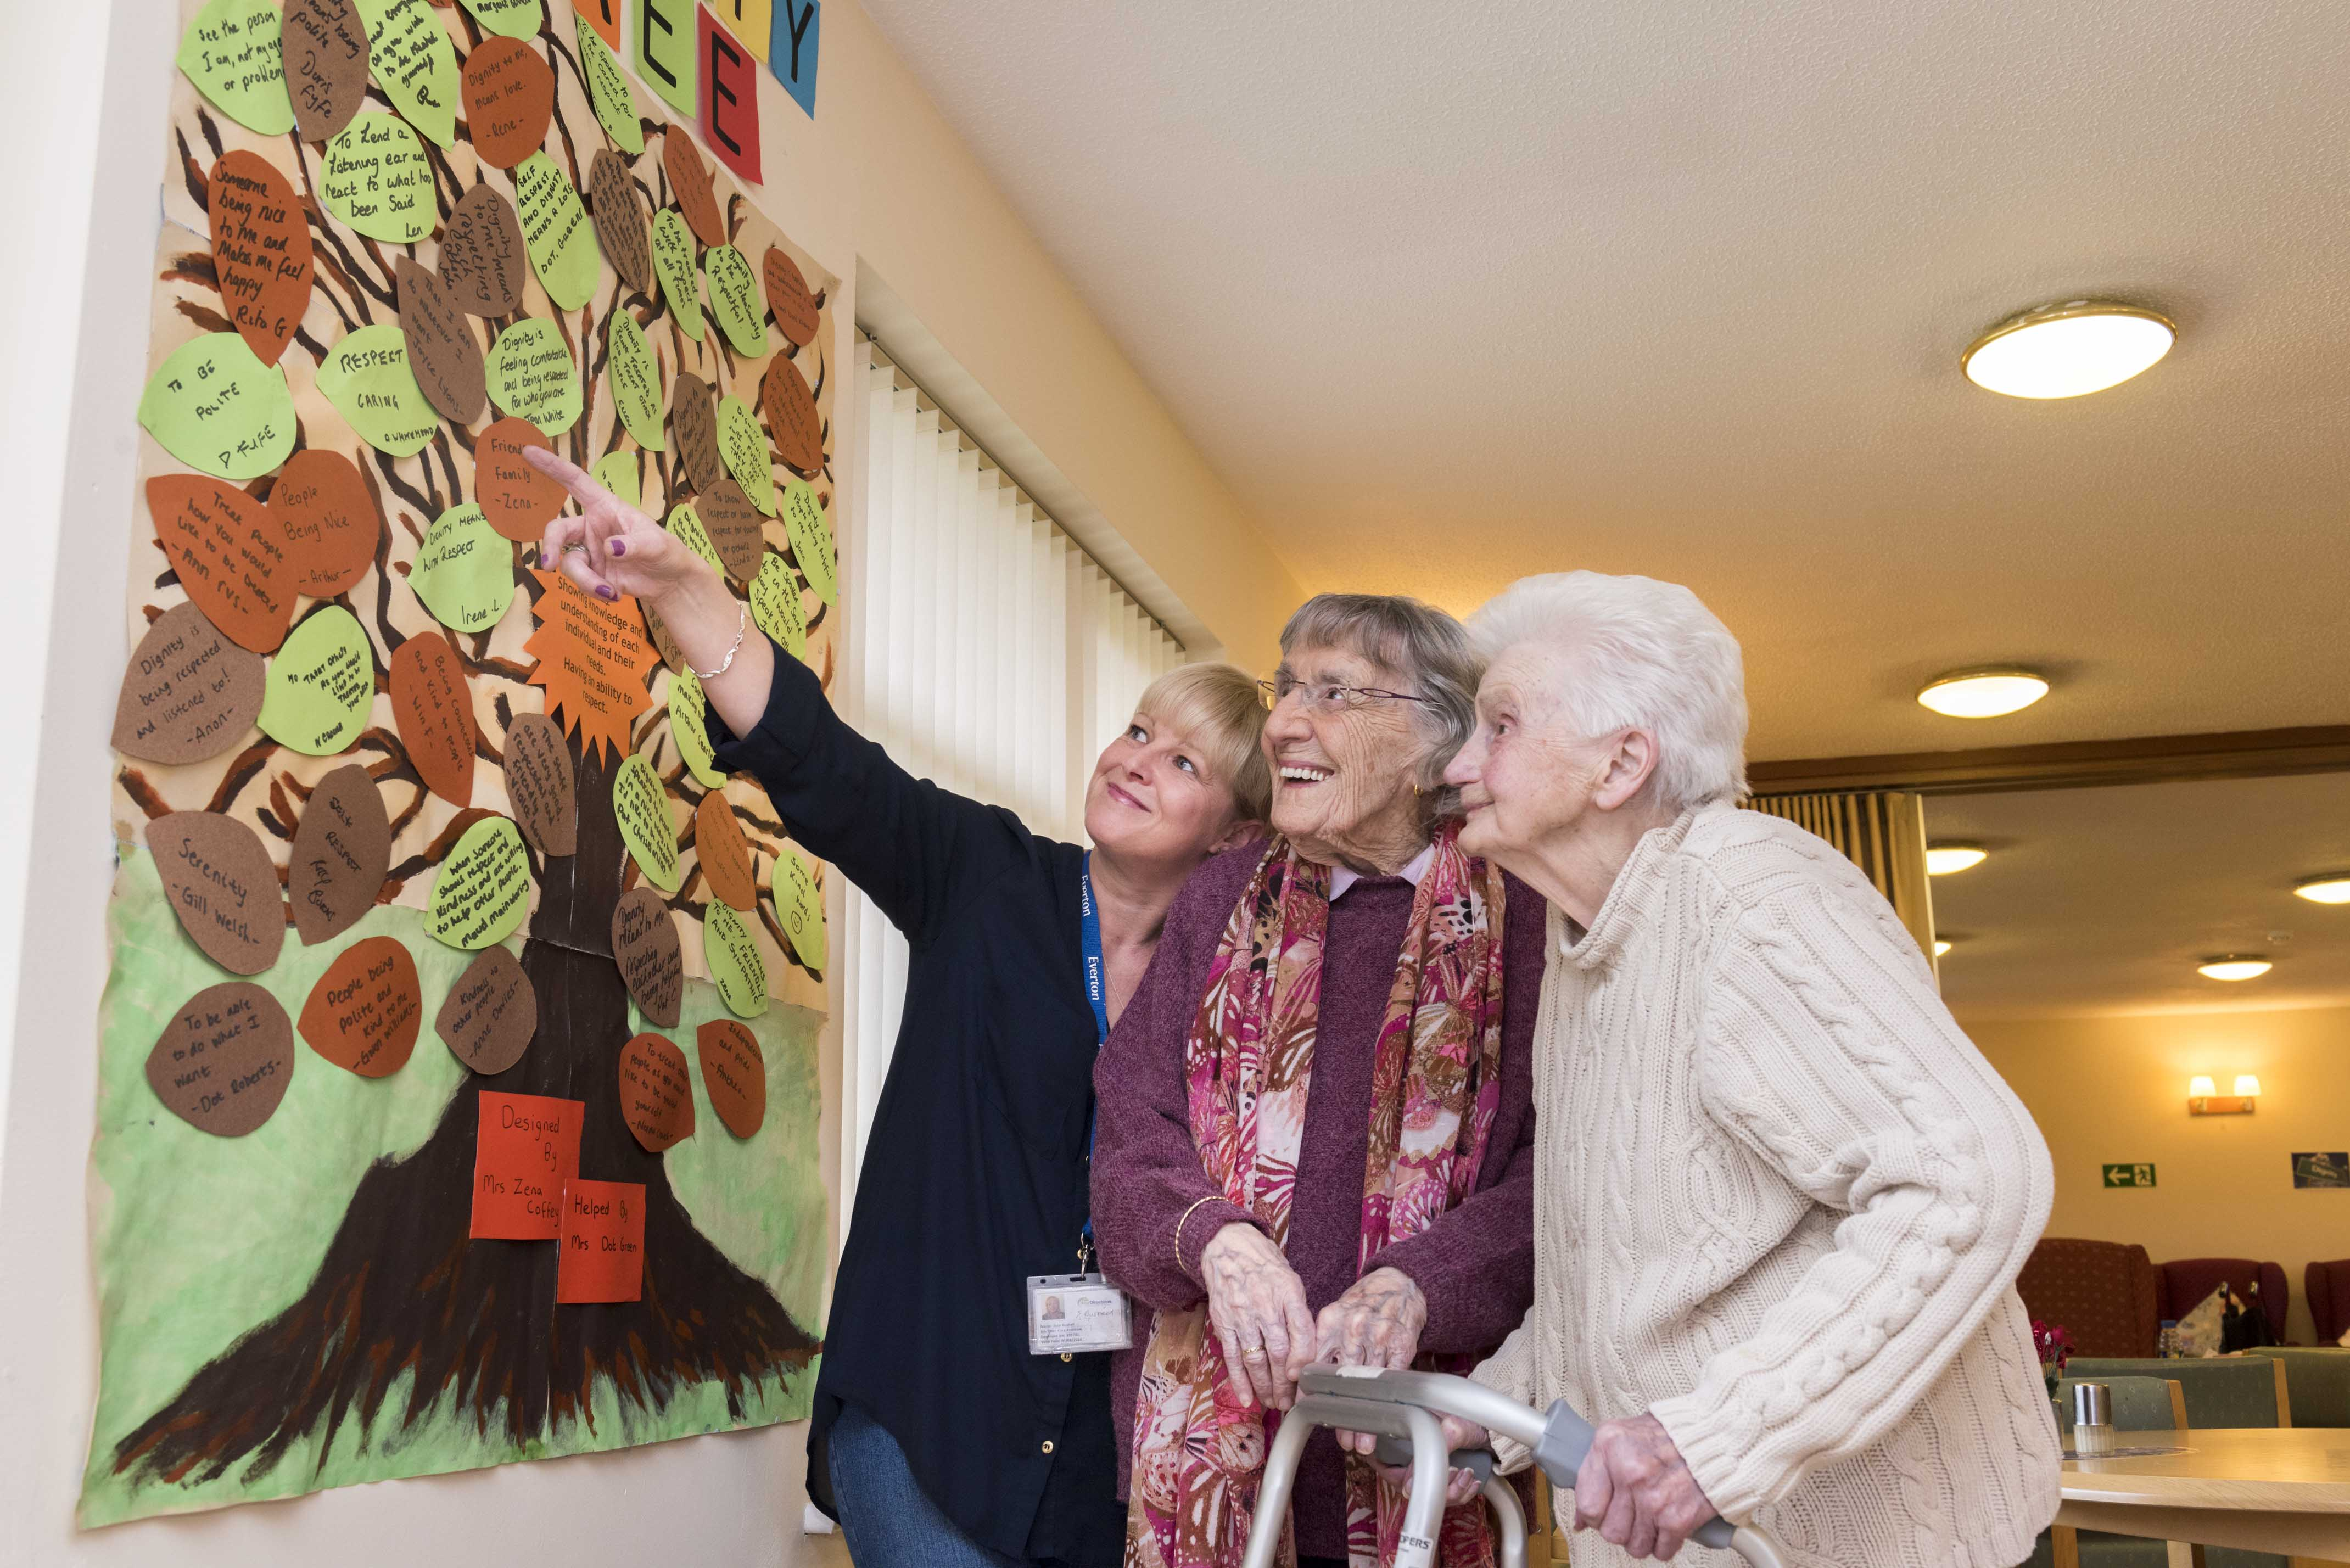 Care home takes part in Dignity Day events